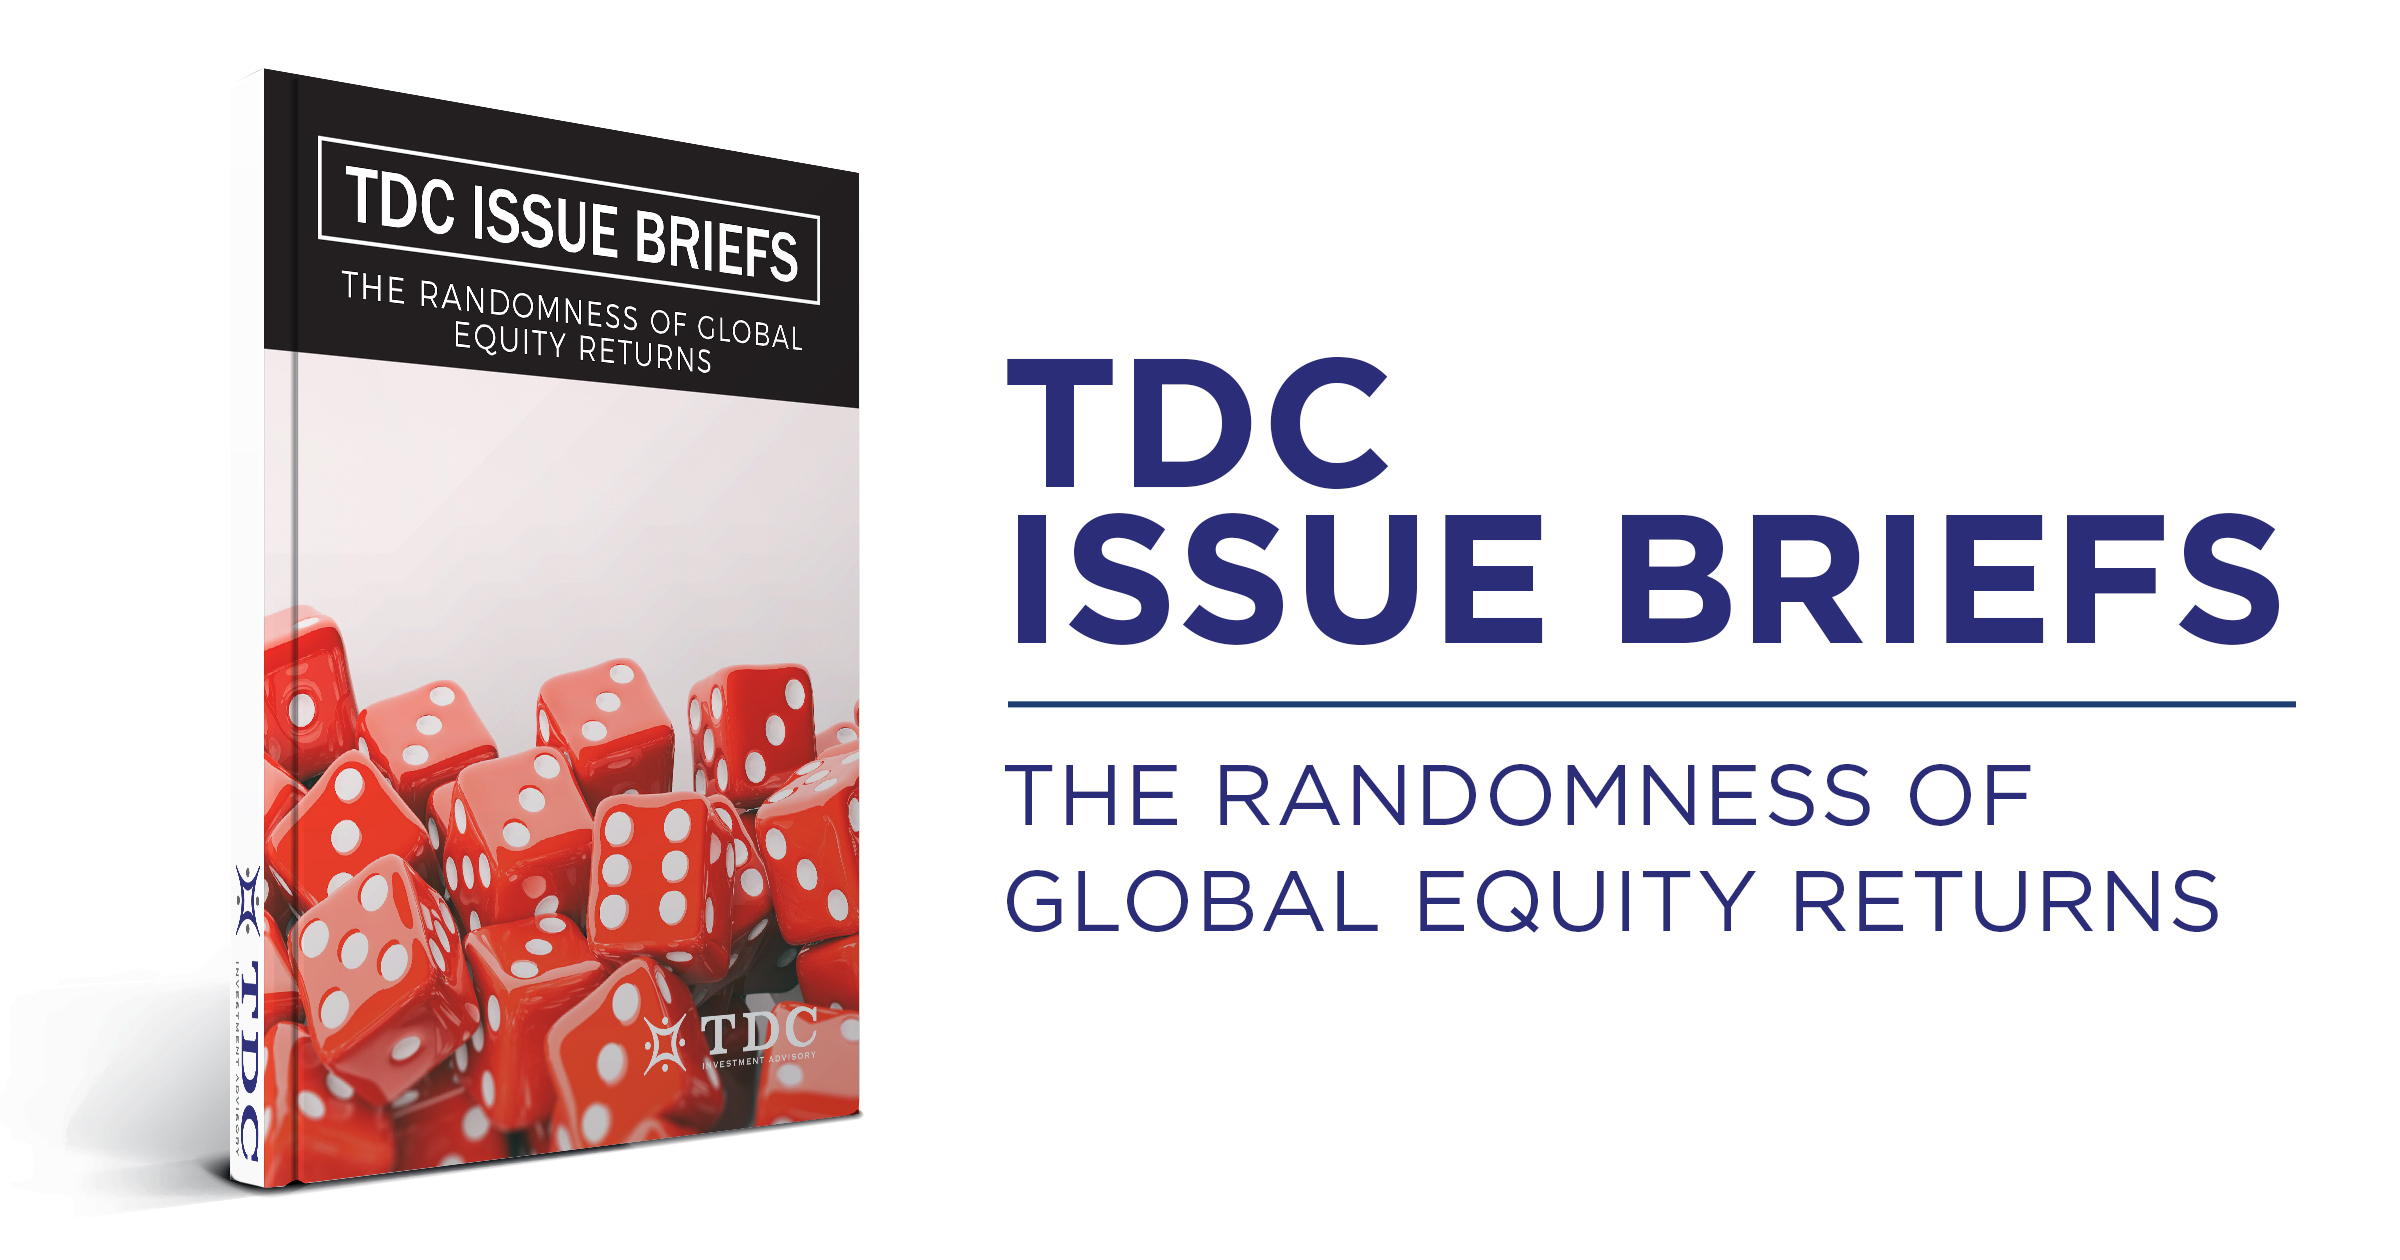 The Randomness of Global Equity Returns